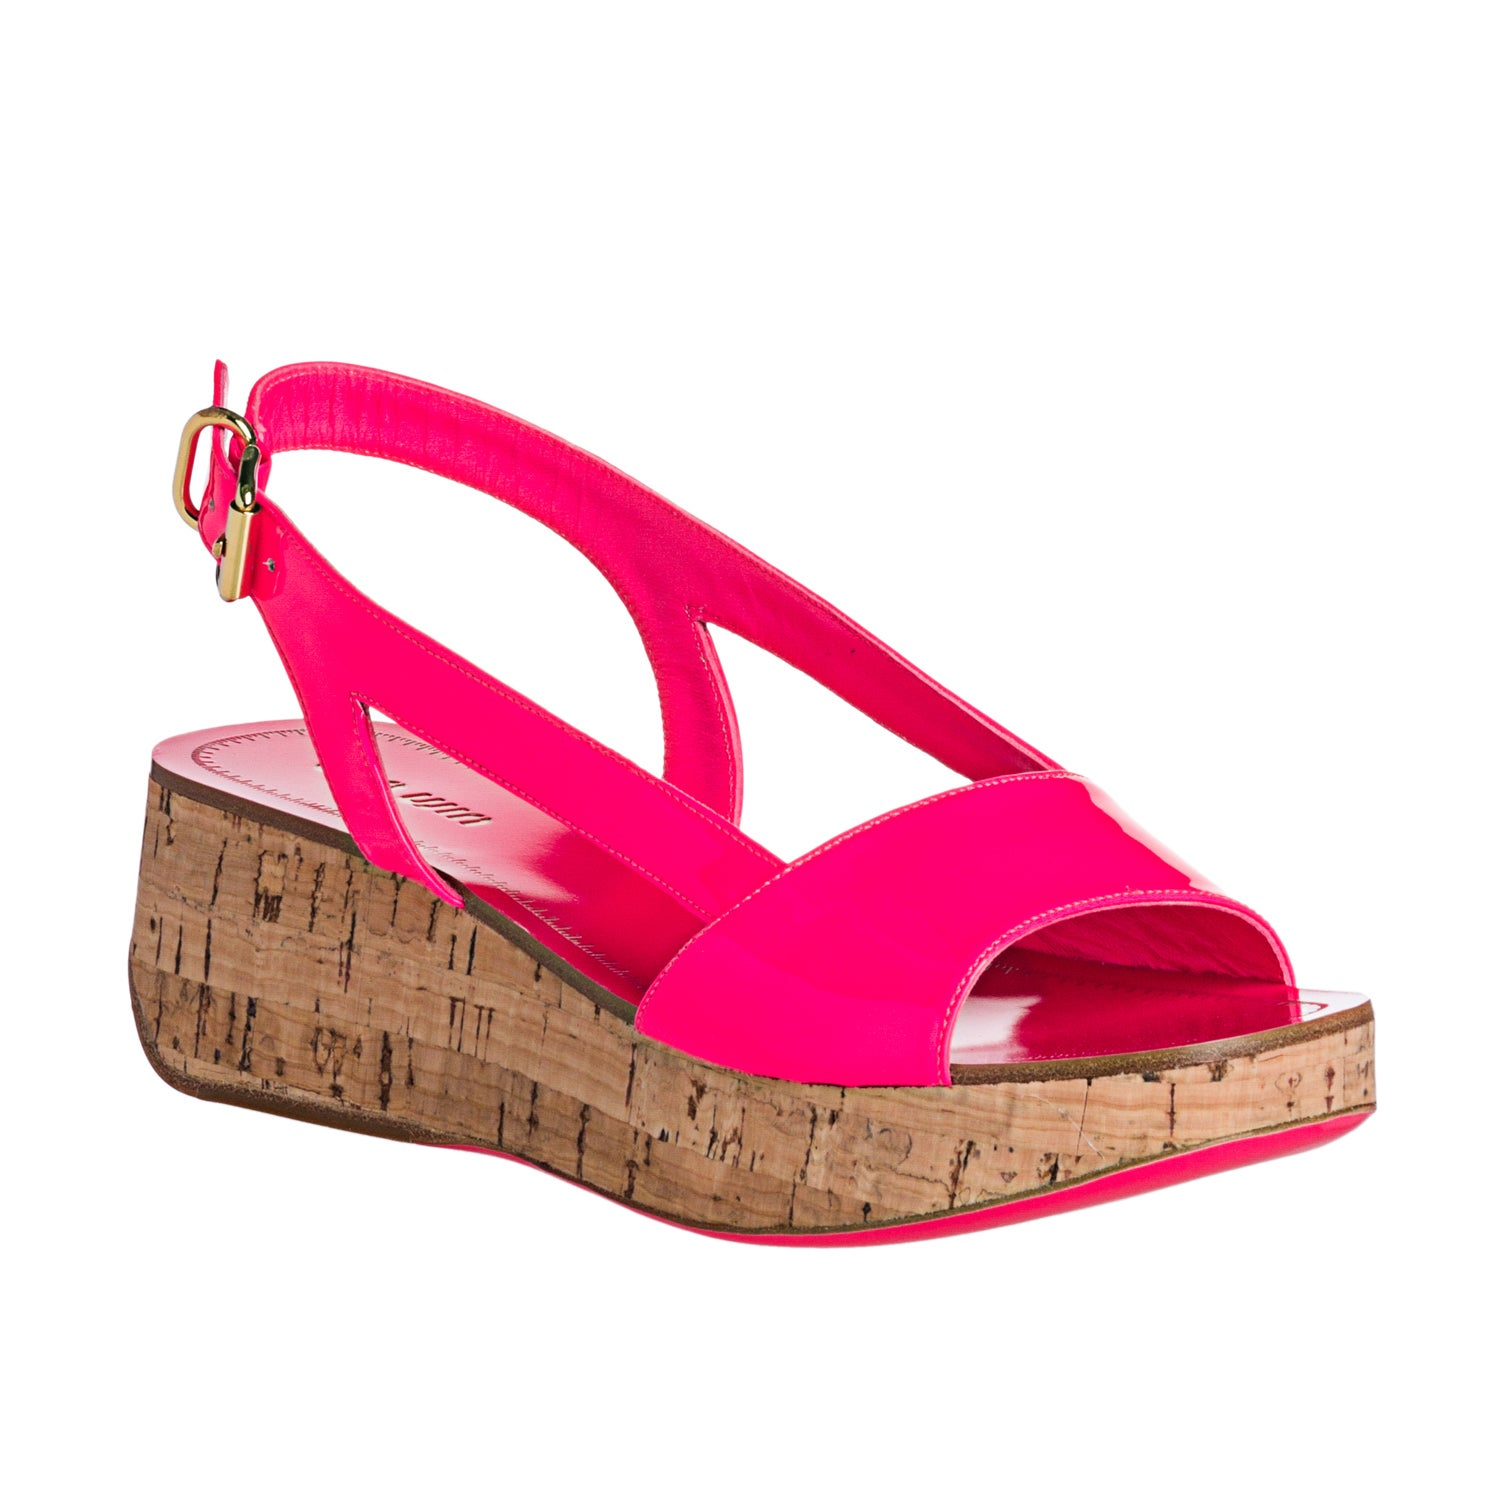 f58d07f09b9 Shop Miu Miu Women s Pink Patent Leather Cork Wedge Sandals - Free Shipping  Today - Overstock - 7920382